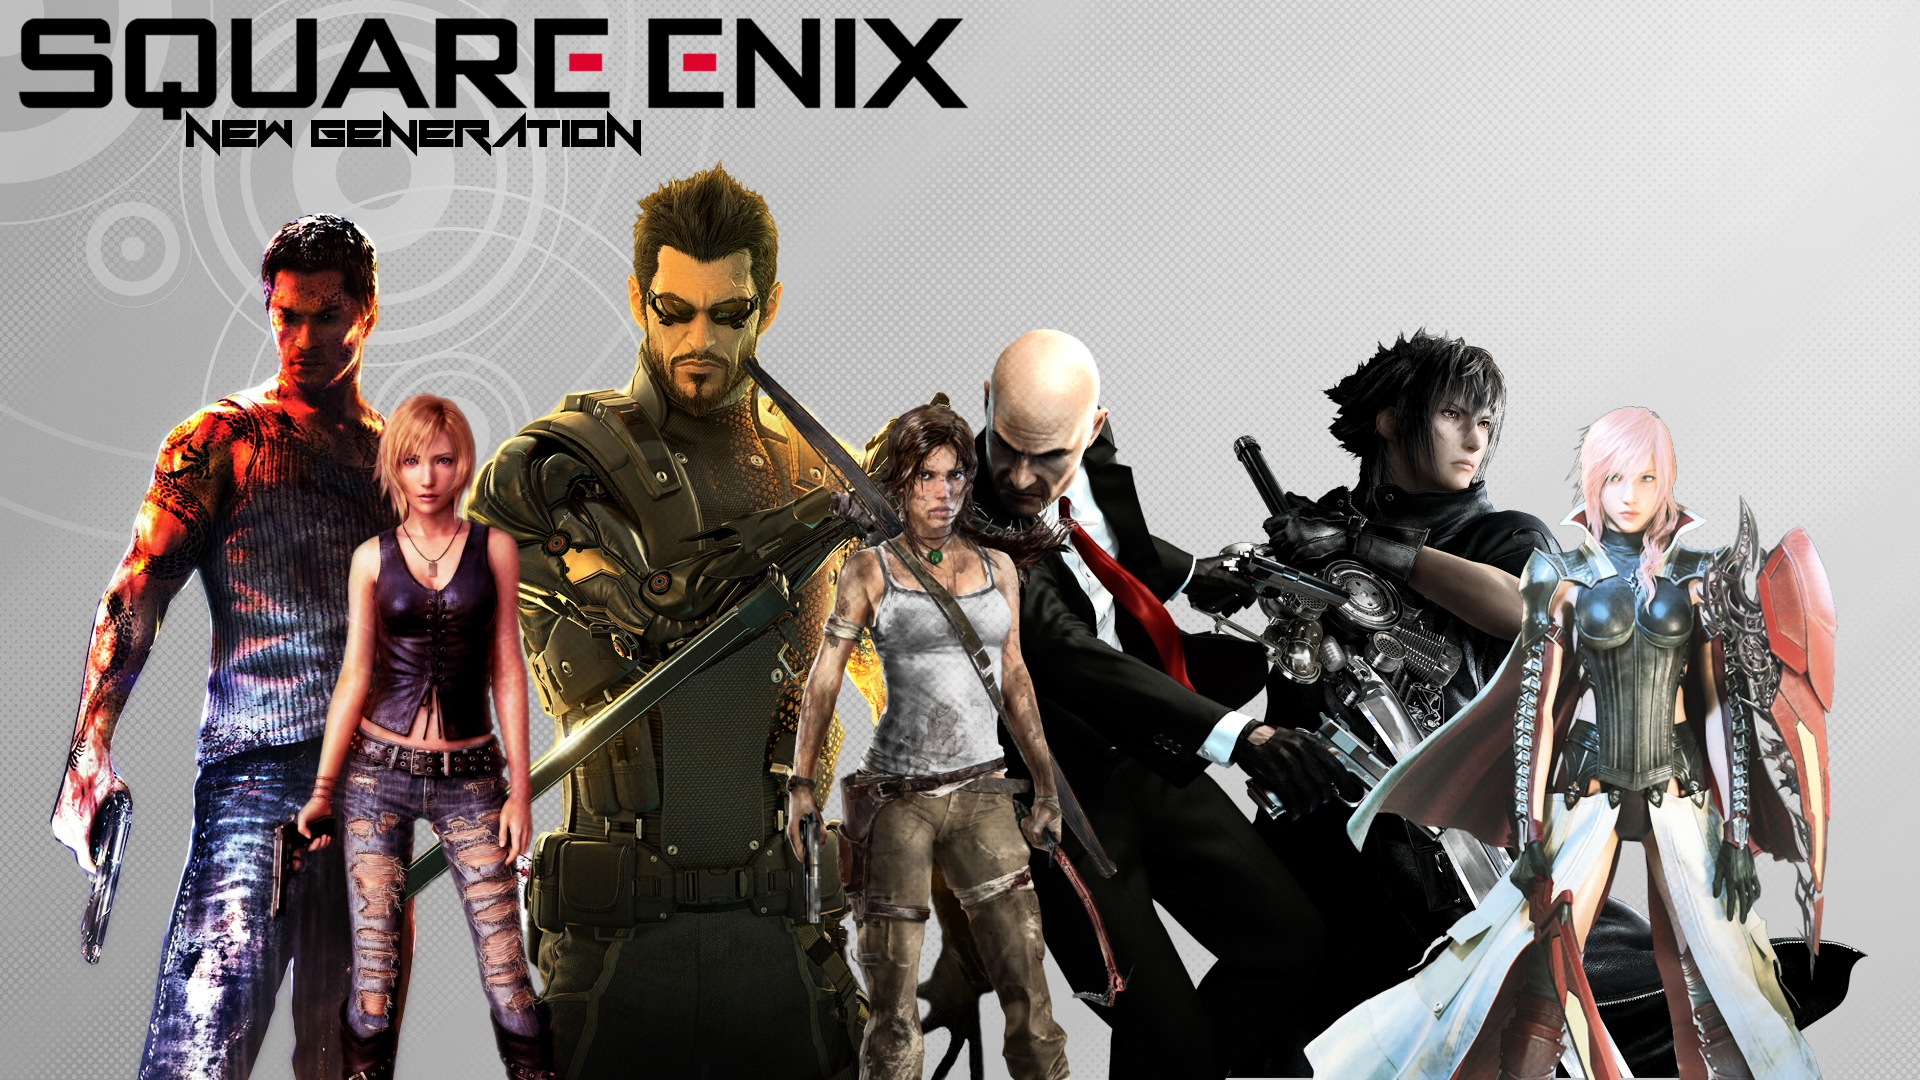 Square Enix to Host Their Own E3 Press Conference